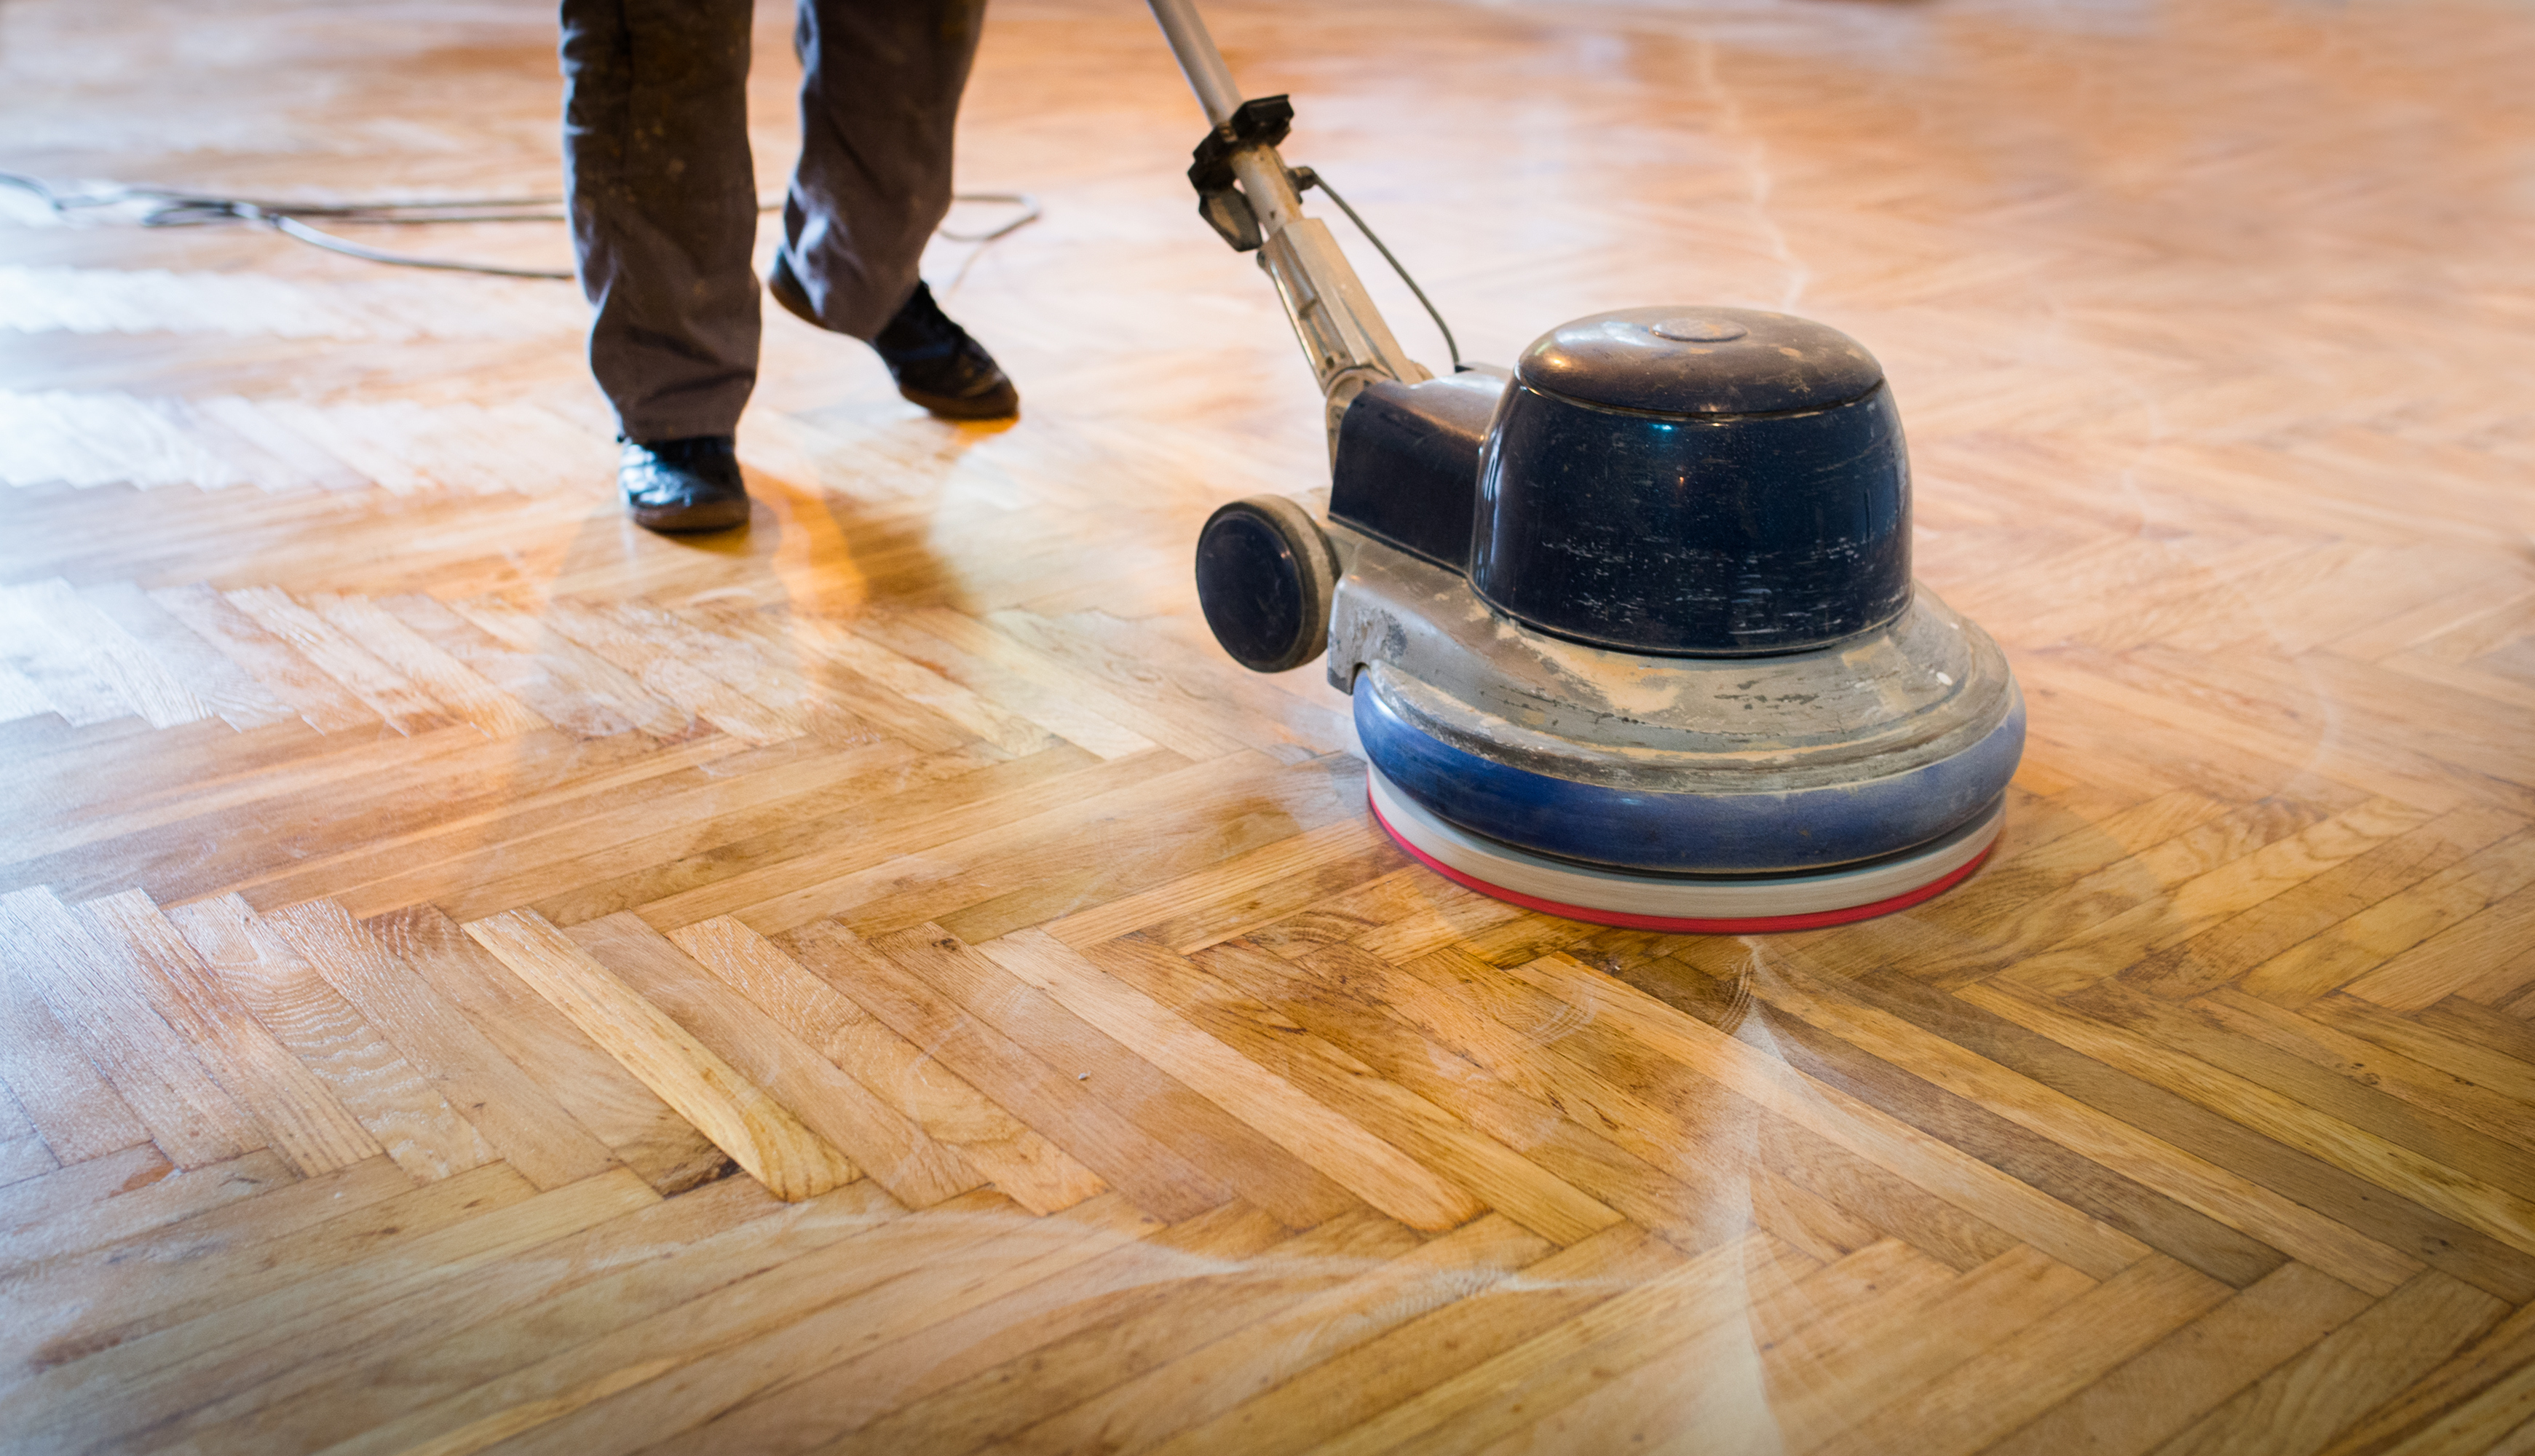 Orbital Vs Drum Sanding For Hardwood Floors Home Guides Sf Gate